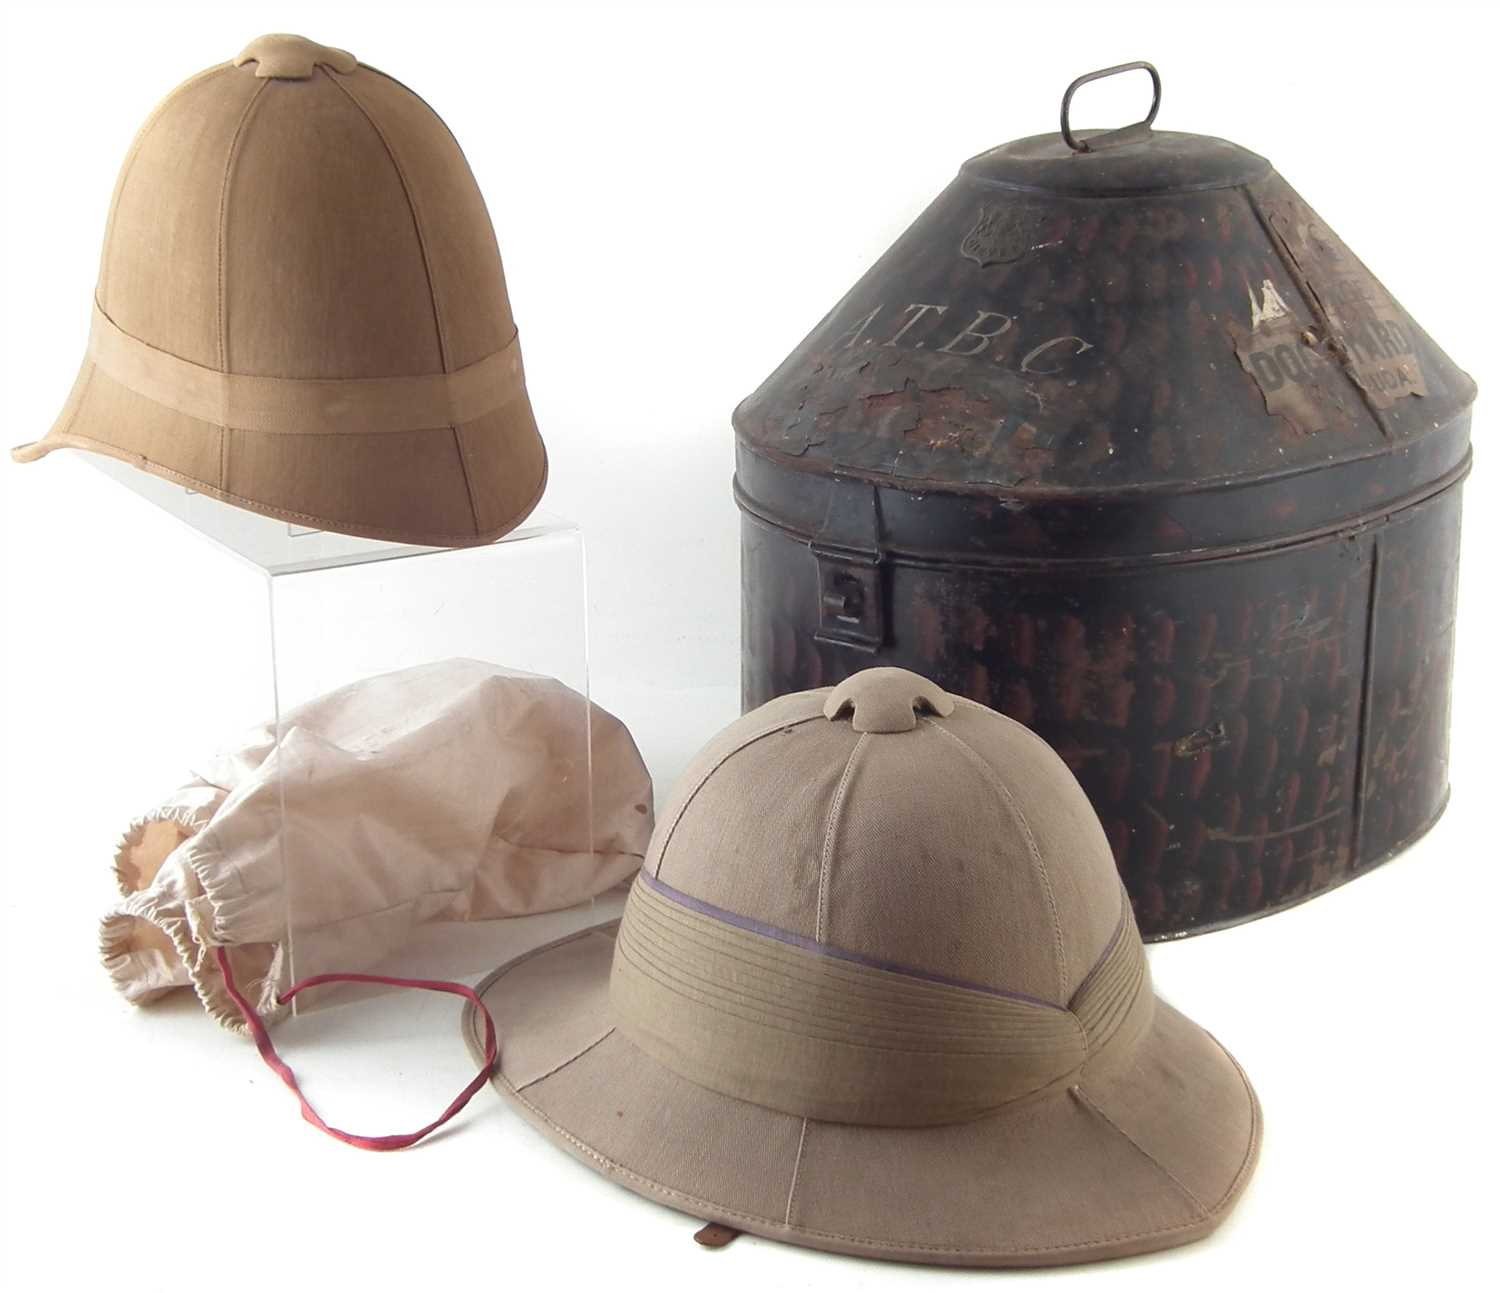 219 - Two Pith helmets, one with tin case, Boer war era,